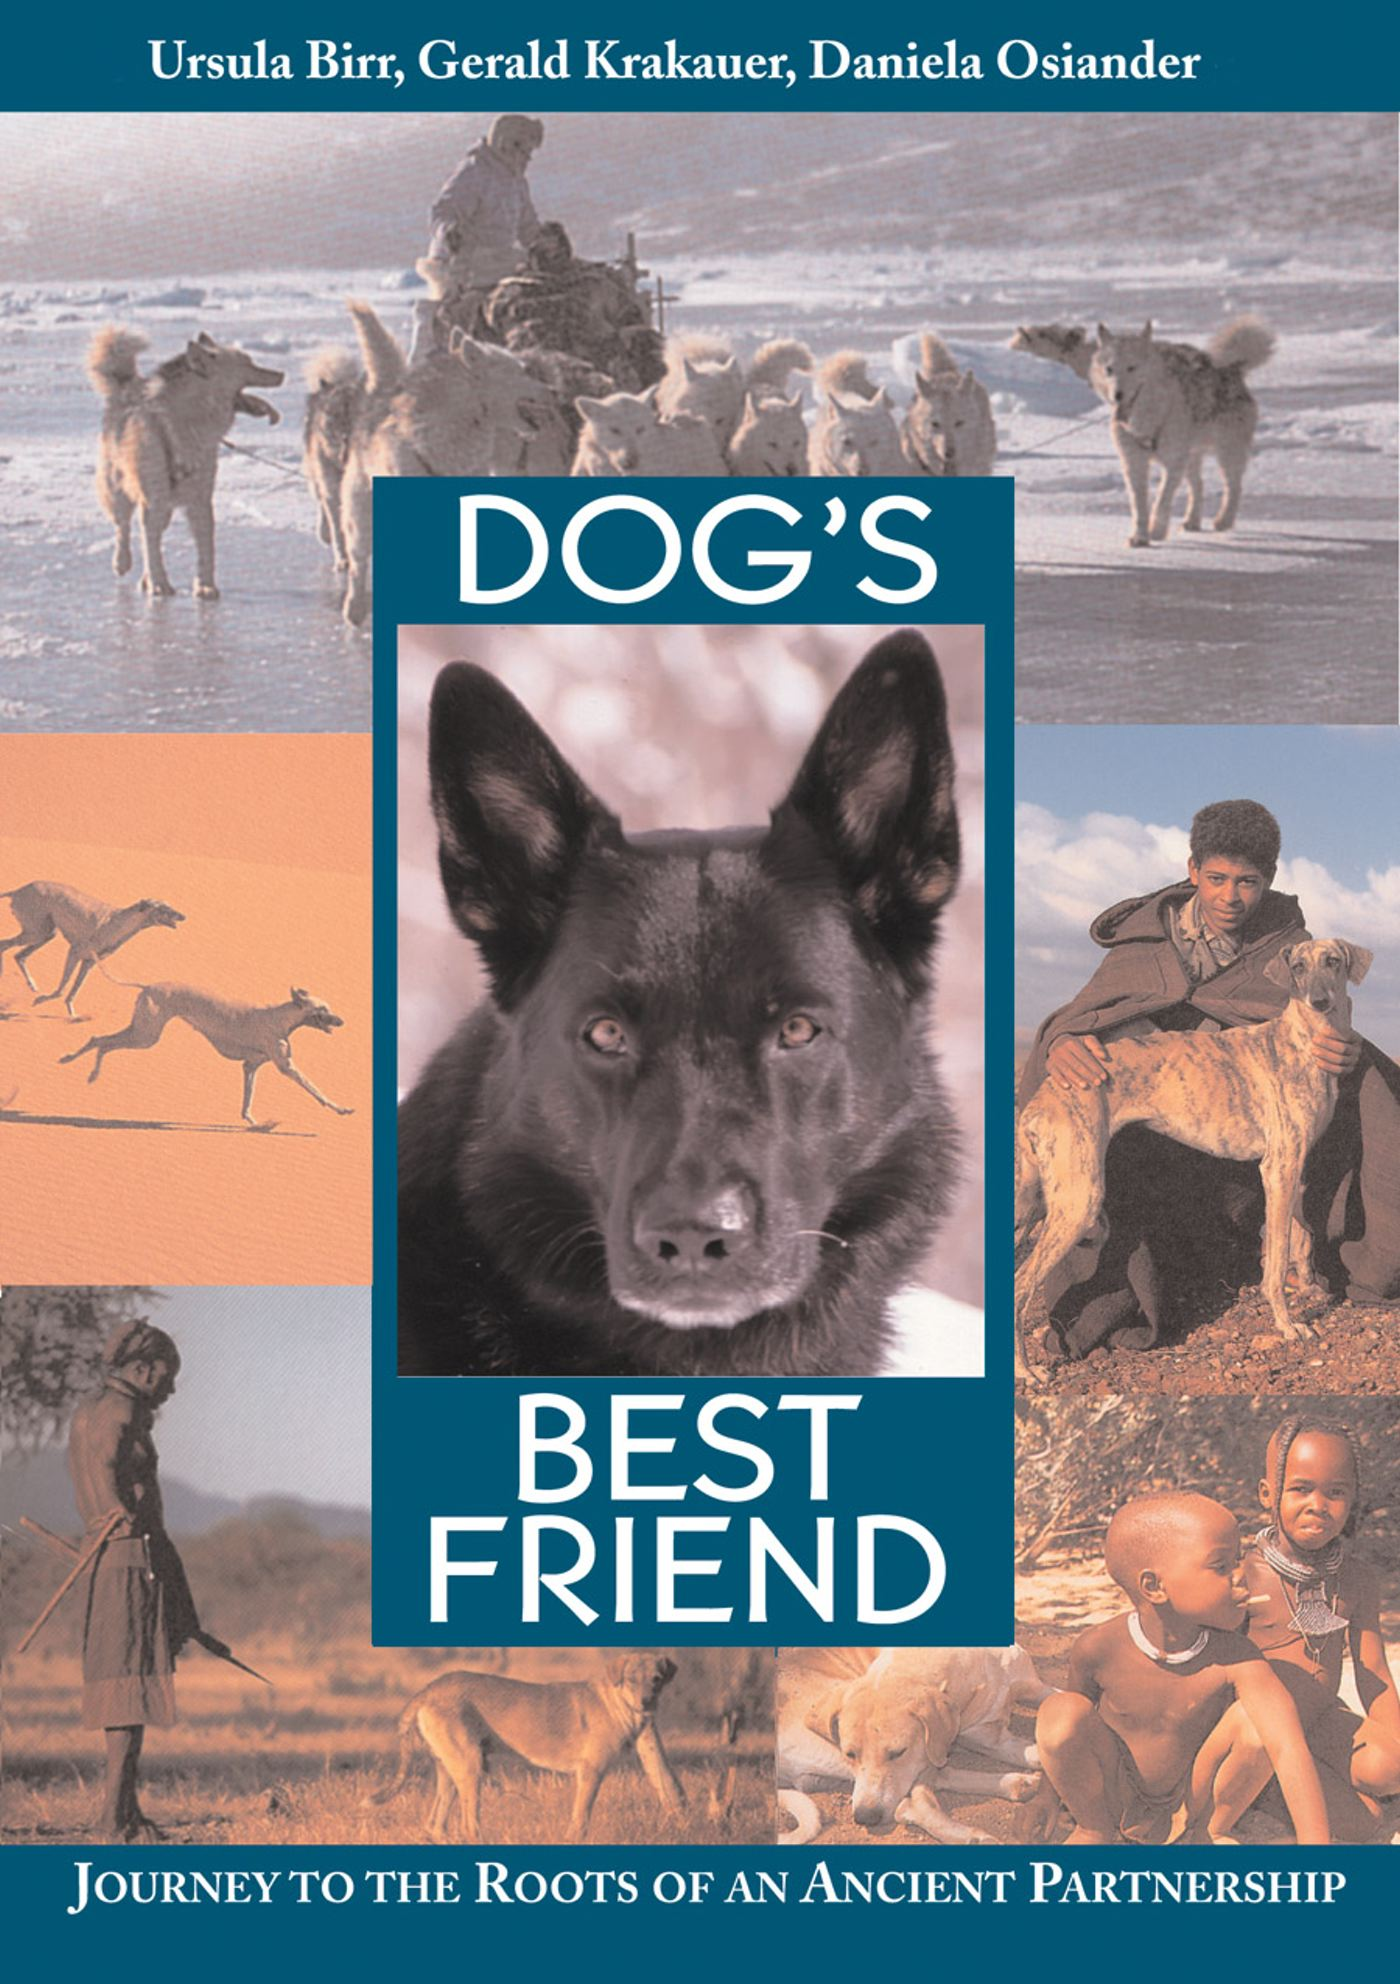 Dogs best friend 9780892818297 hr